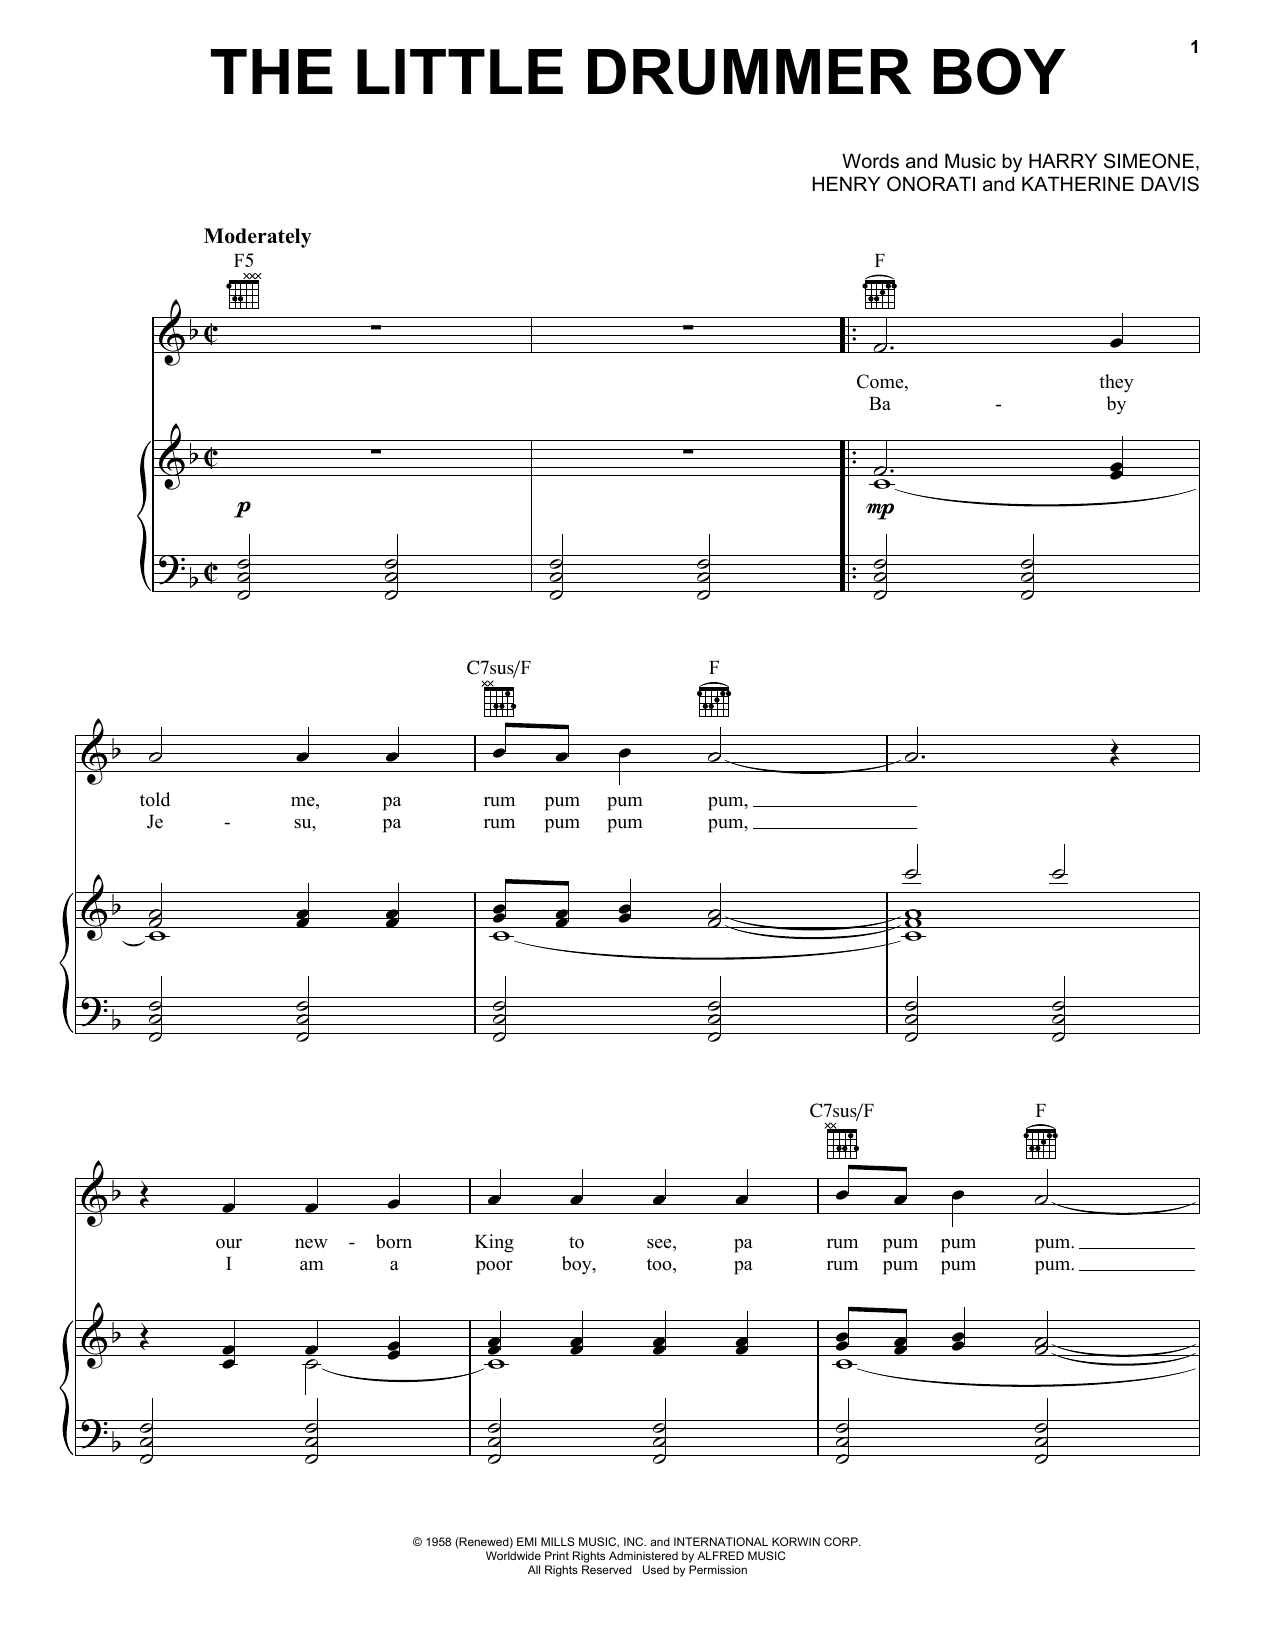 Harry Simeone 'The Little Drummer Boy' Sheet Music Notes, Chords, Score. Download Printable PDF ...